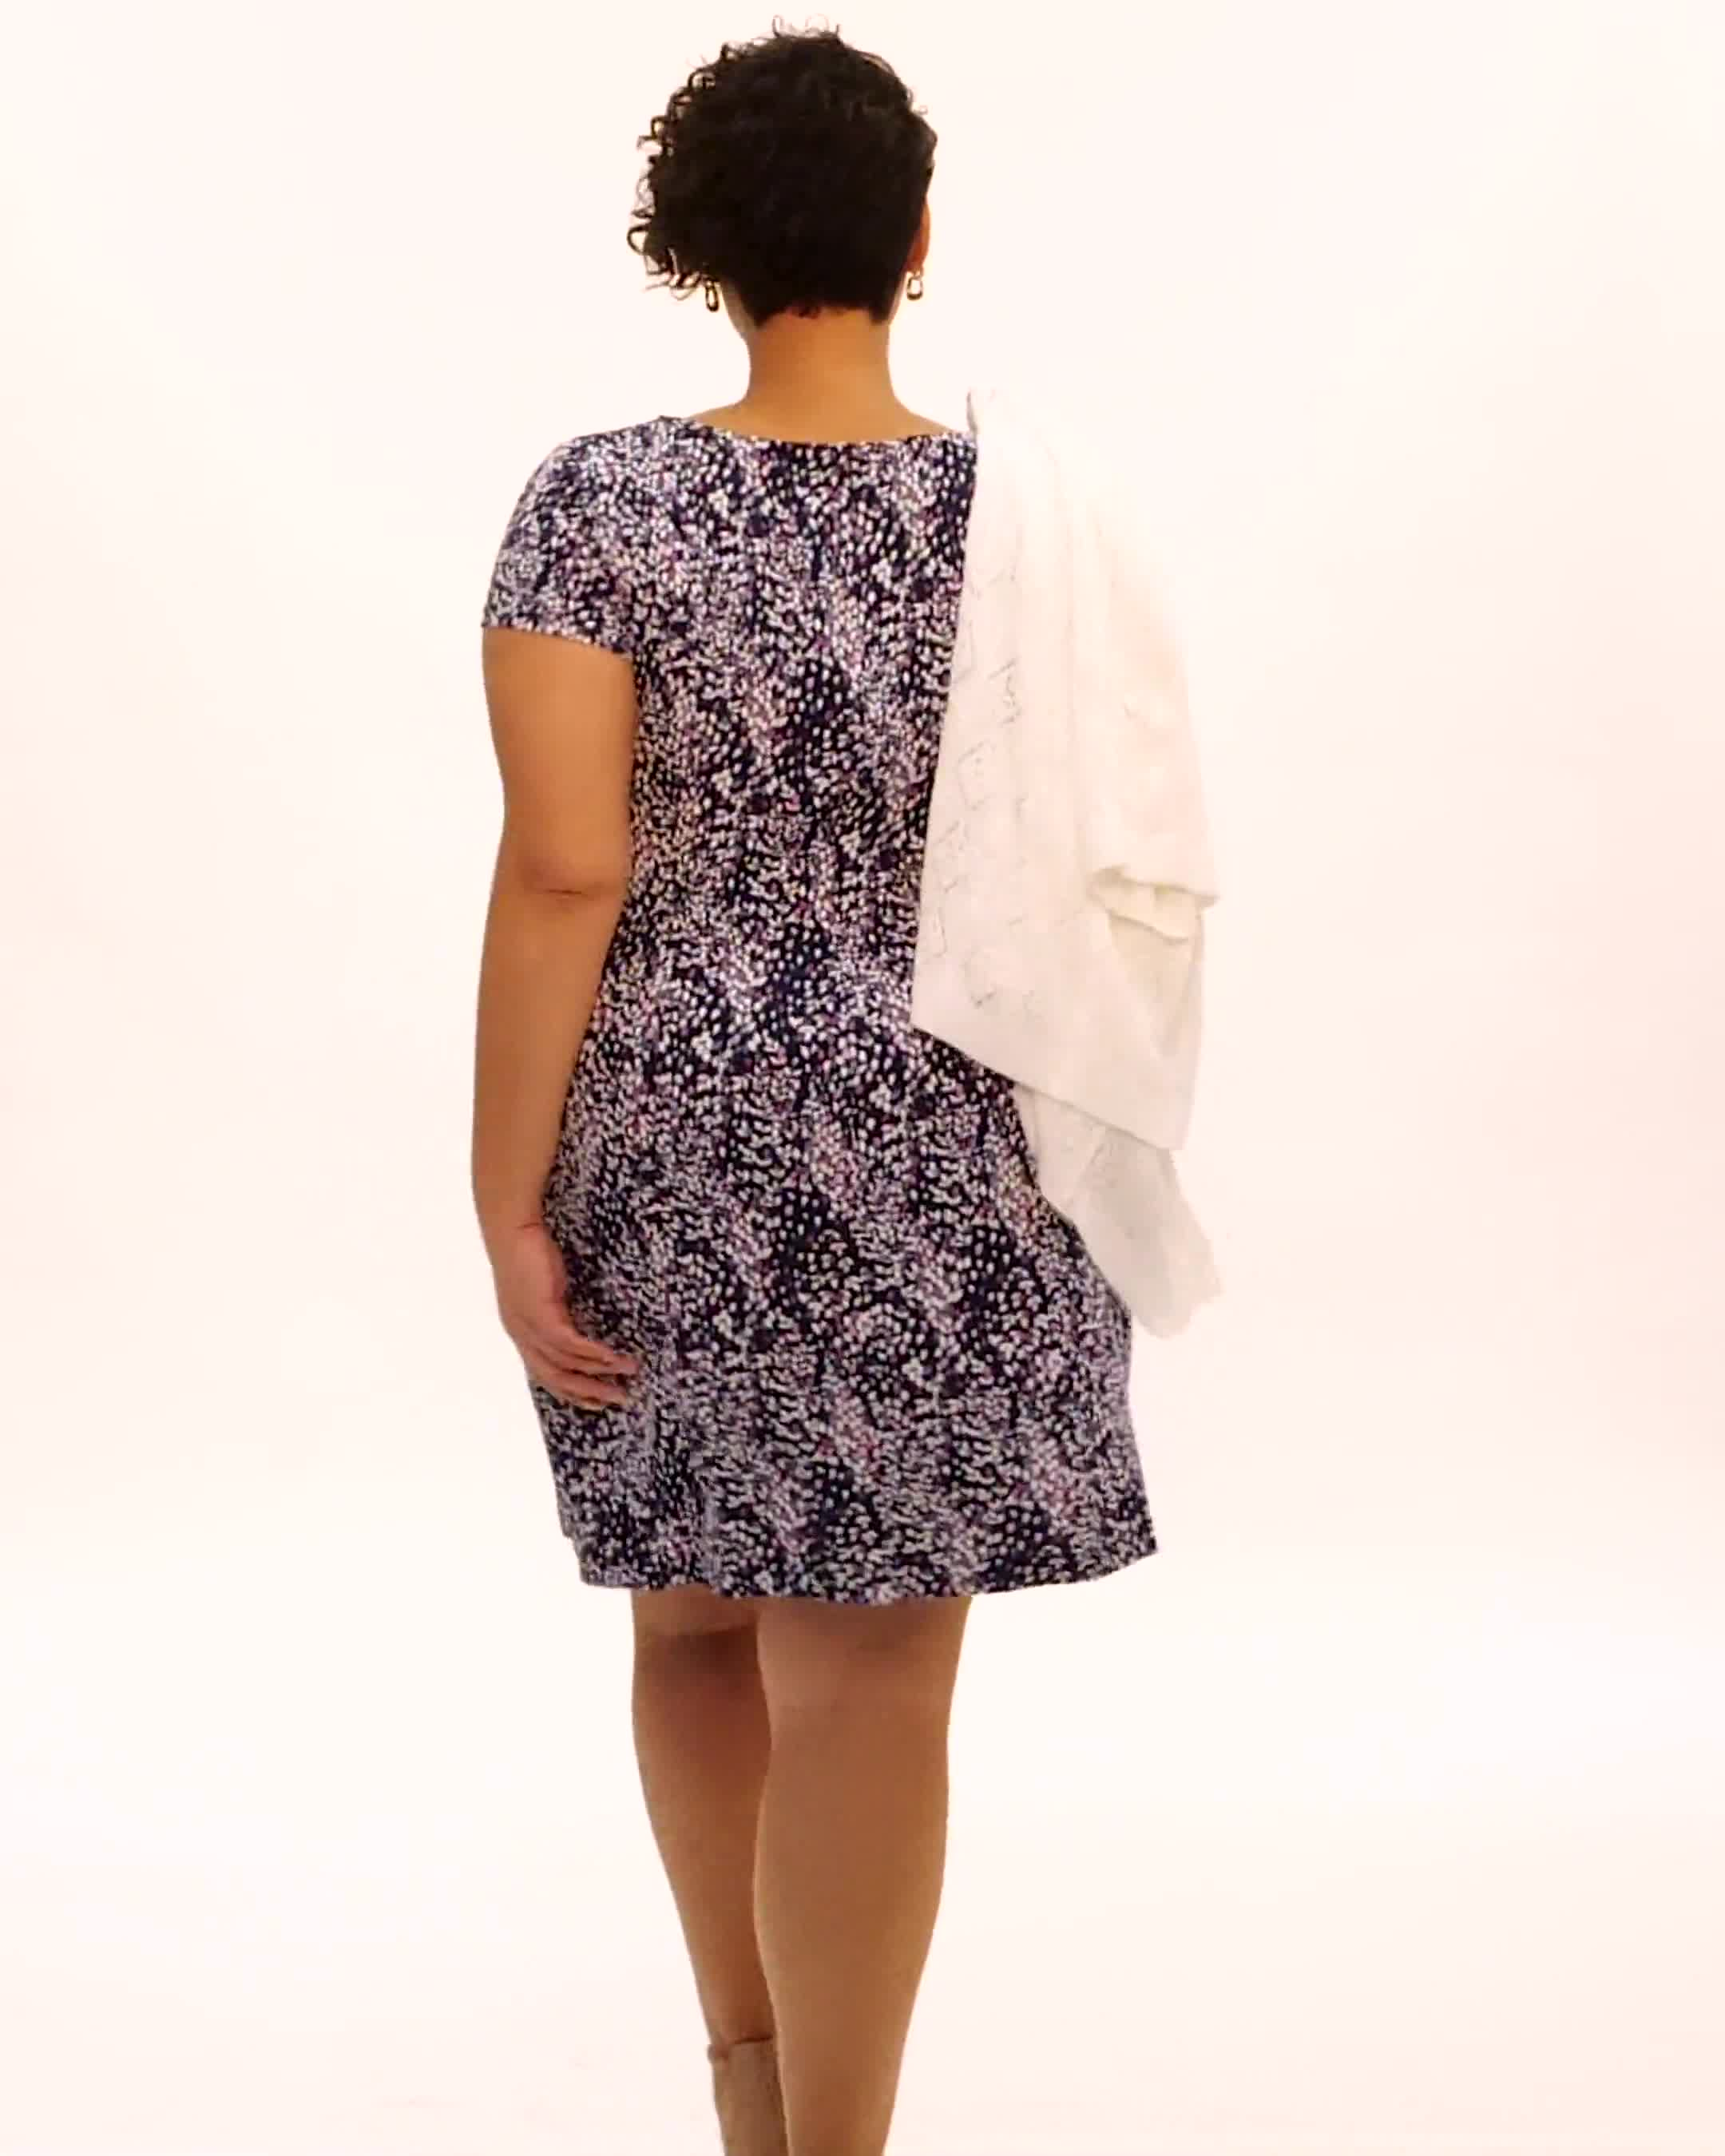 Fit and Flare Puff Print with Pockets Dress - Video